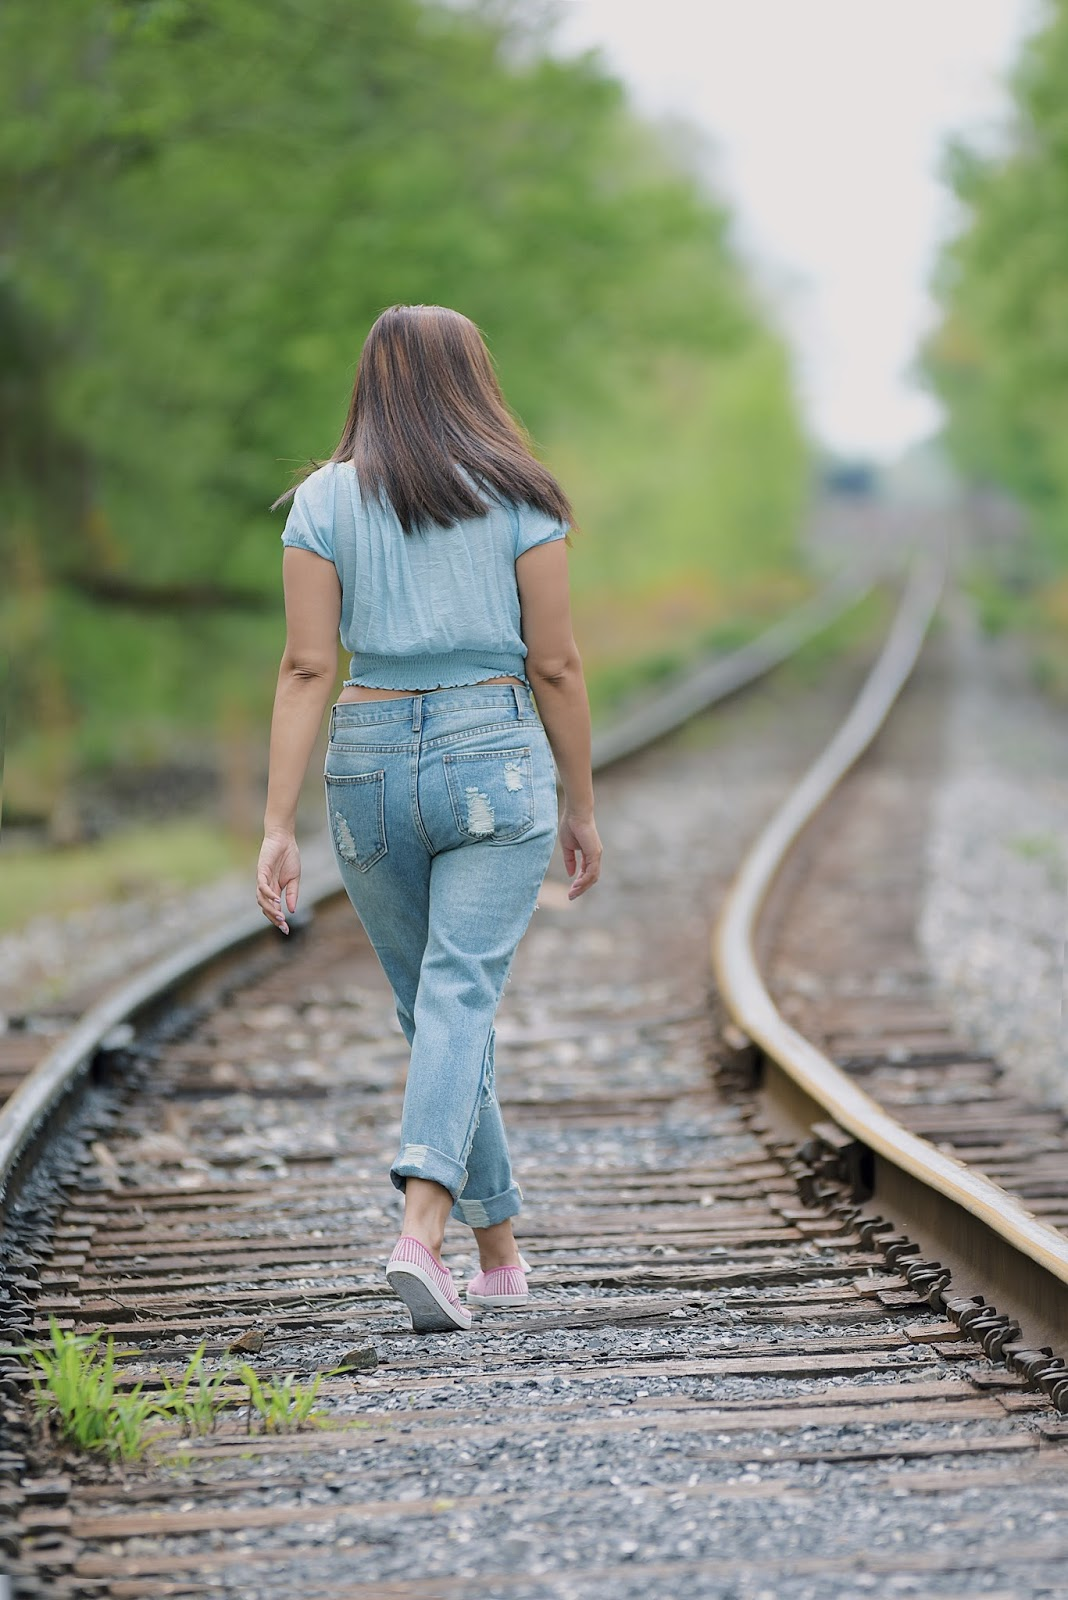 Distressed Boyfriend Jeans-look of the day-mariestilo-travelblogger-mariestilo travels-fashionblogger-it girl-armandhugon-shein-boyfriend jeans-walmart shoes-moda el salvador-content creator